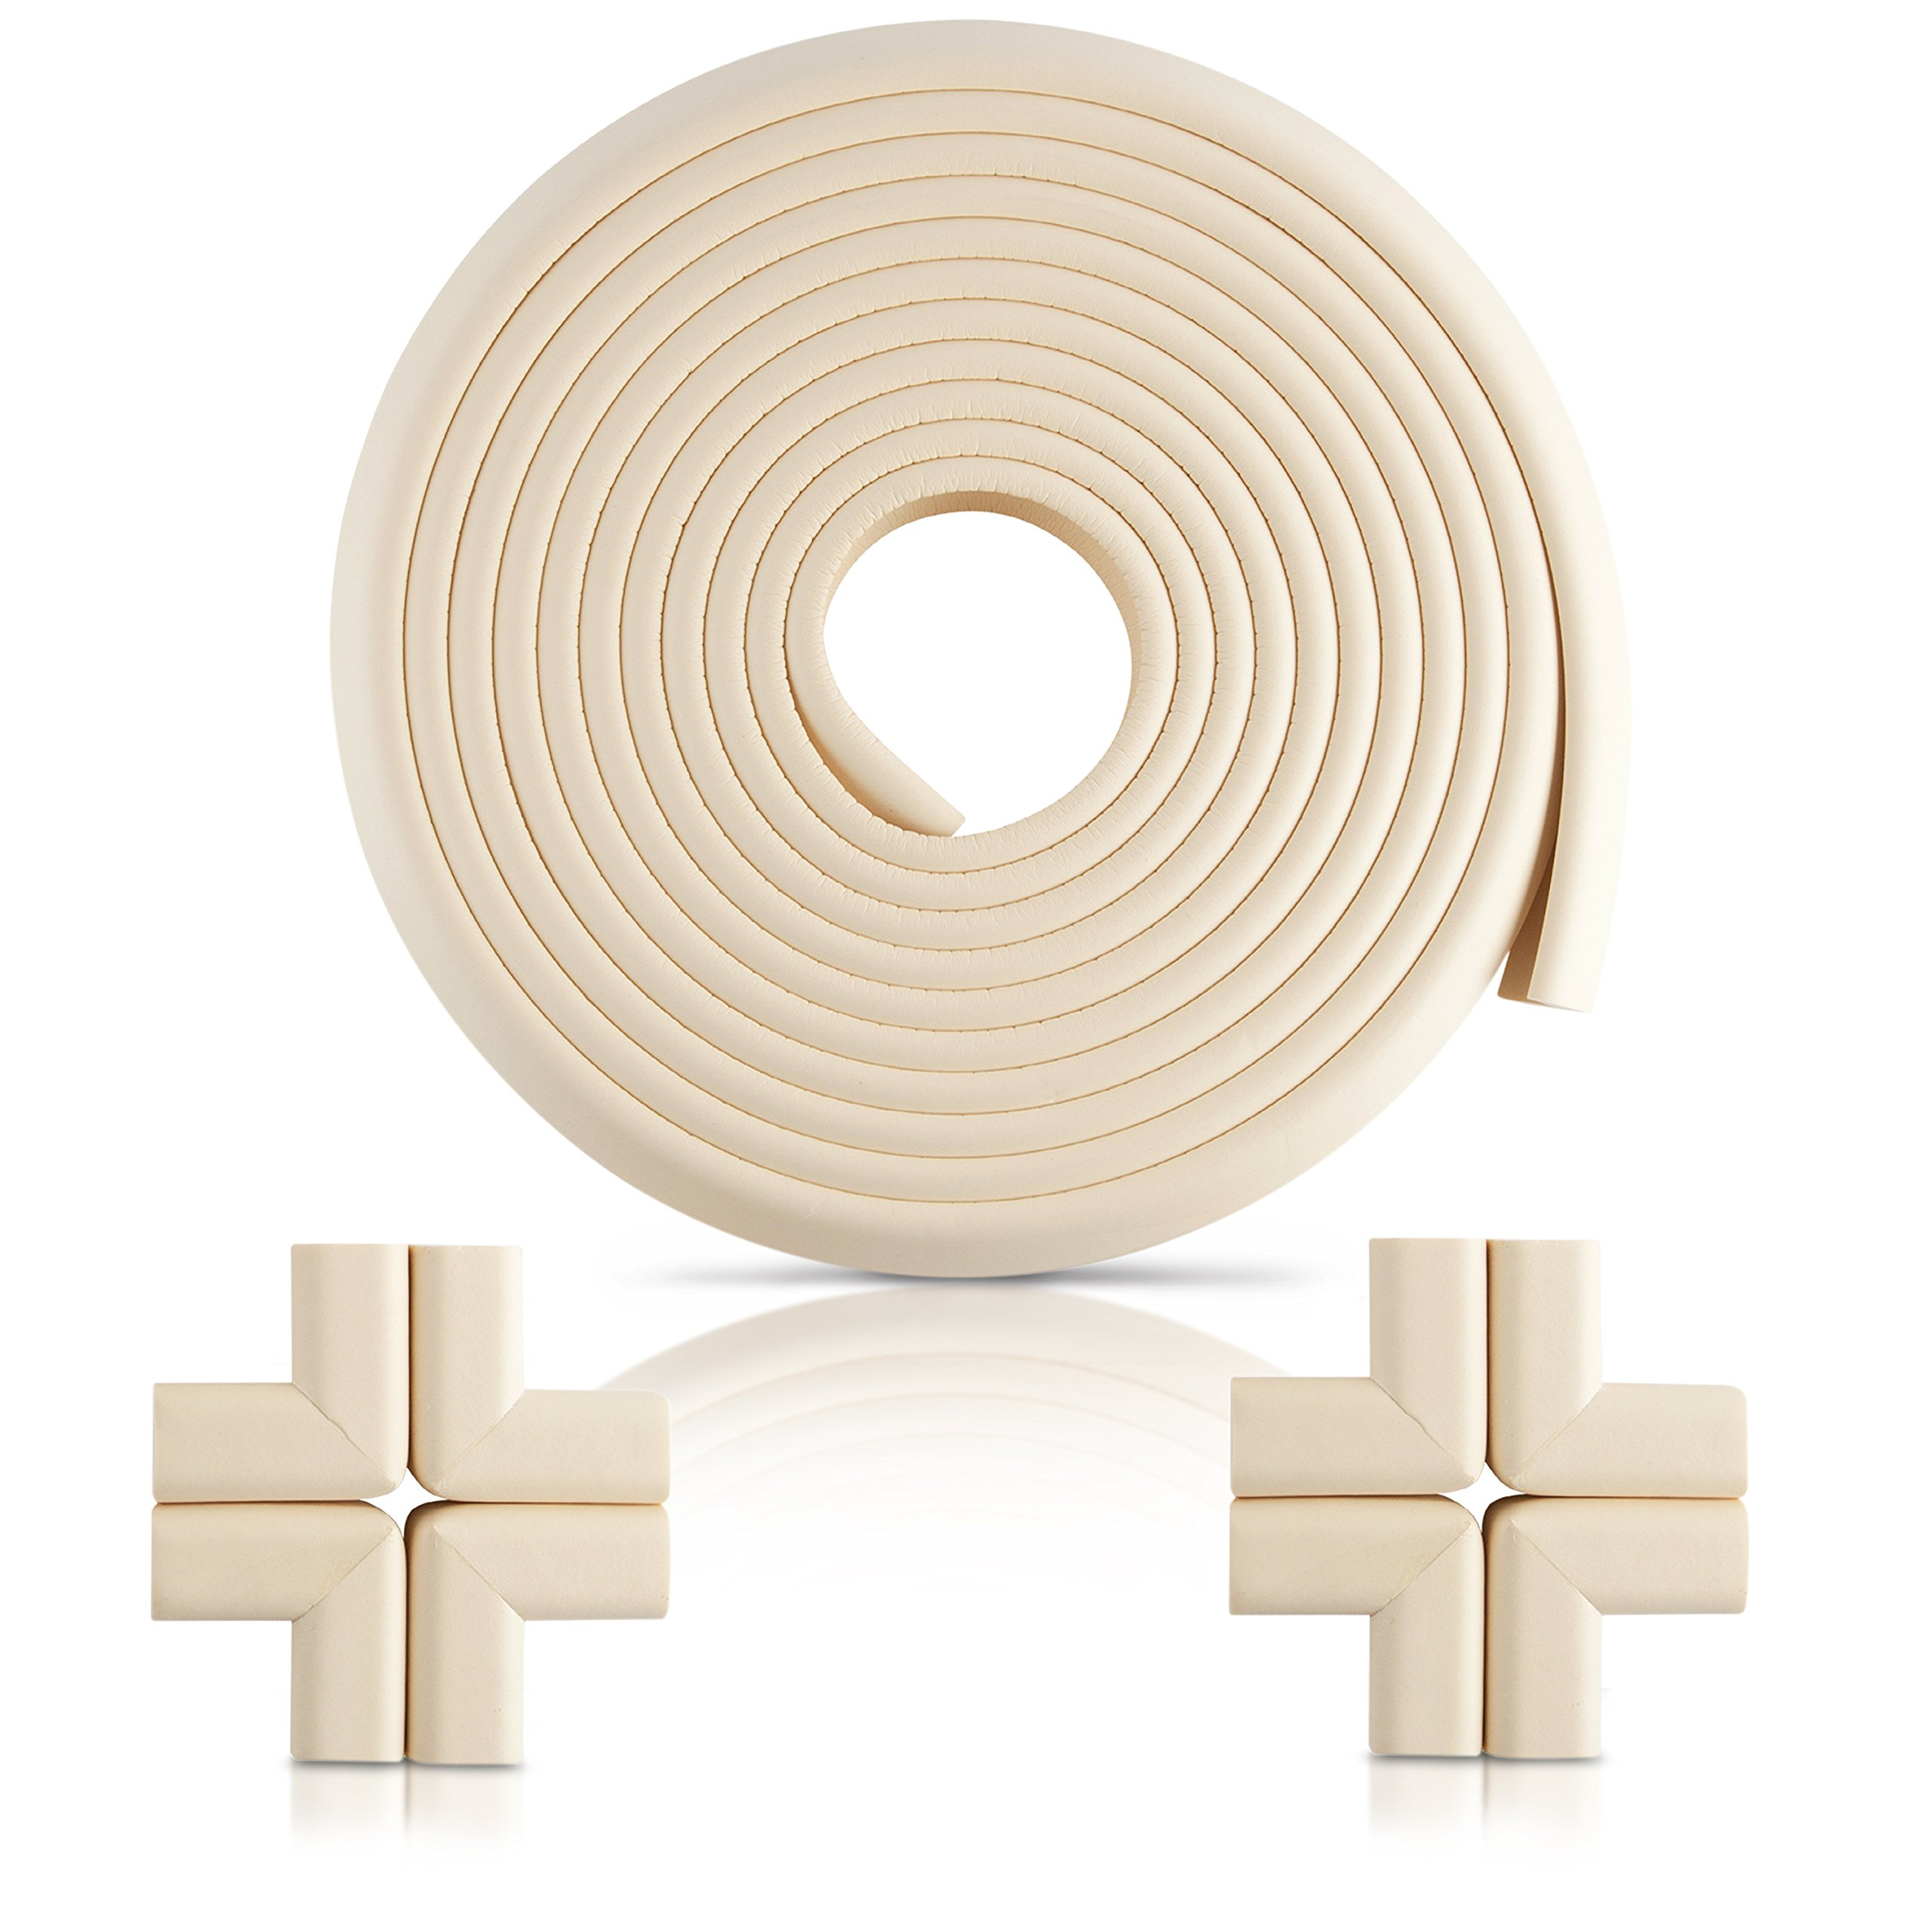 Furniture Edge and Corner Guards | 20.4ft Protective Foam Cushion | 18ft Bumper 8 Adhesive Childsafe Corners | Baby Child Proofing Set NonToxic and Safe for Table, Fireplace, Countertop | White